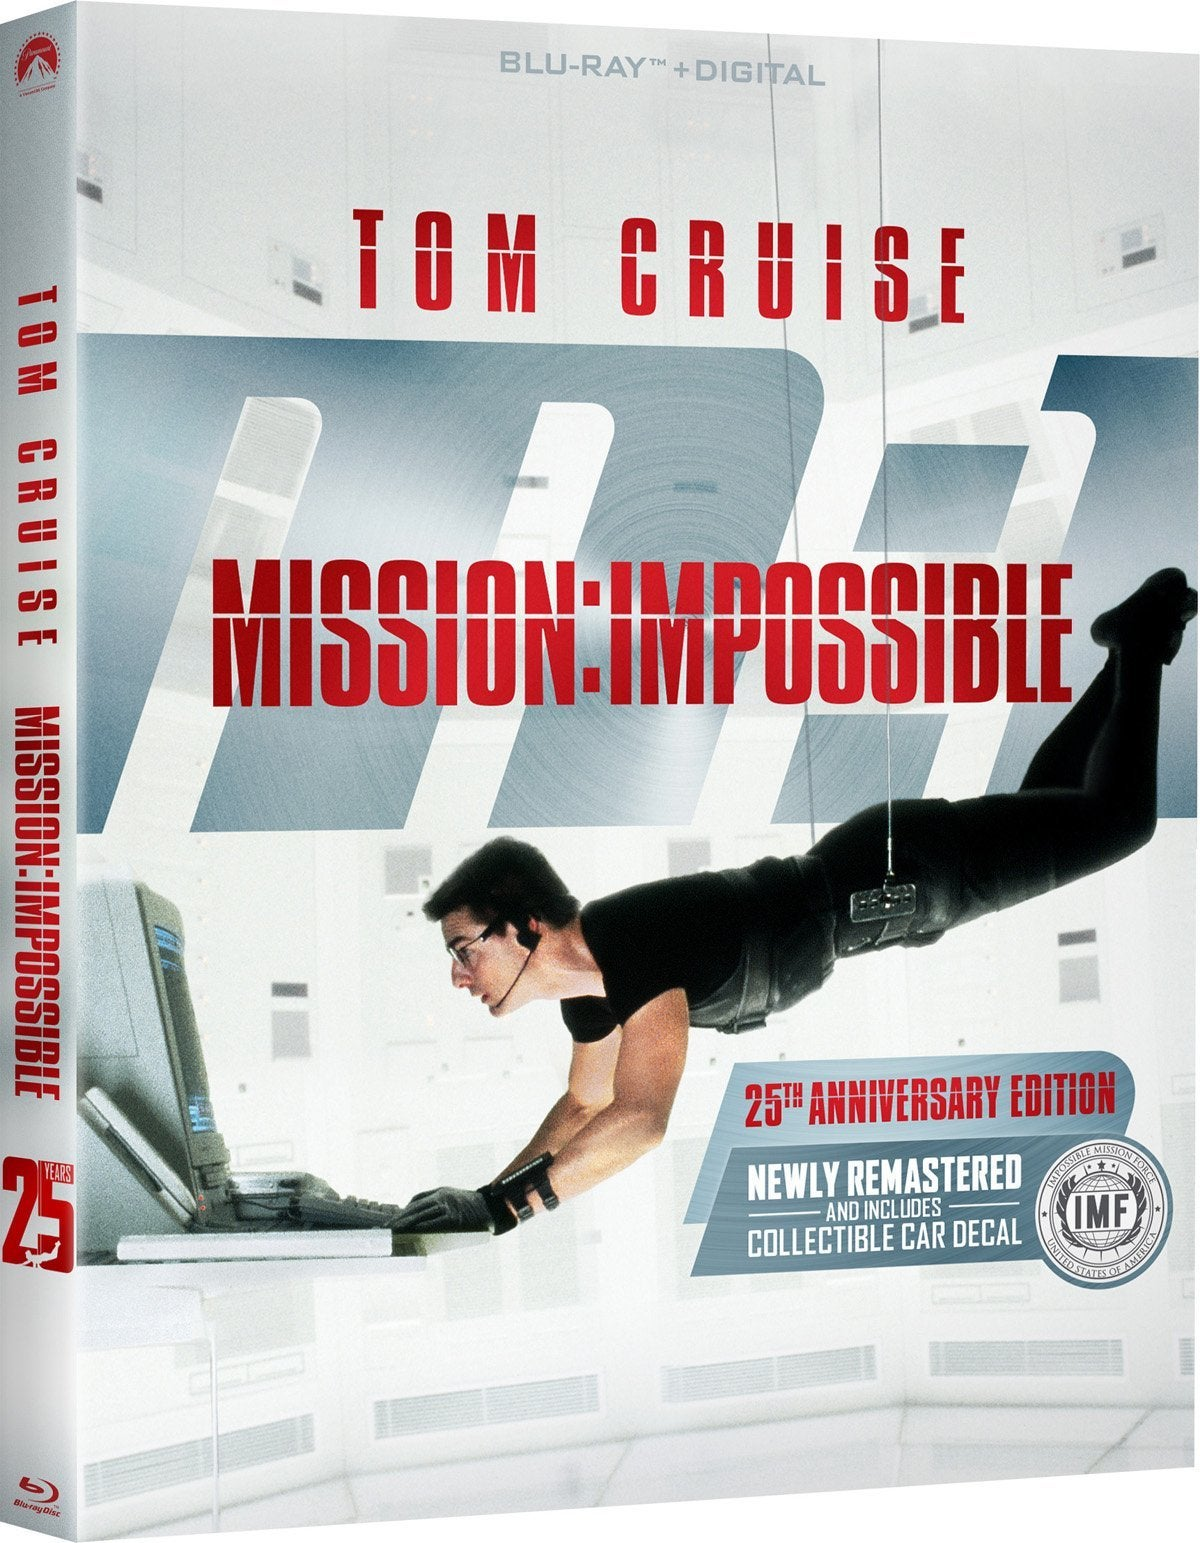 mission impossible blu ray 4k anniversary